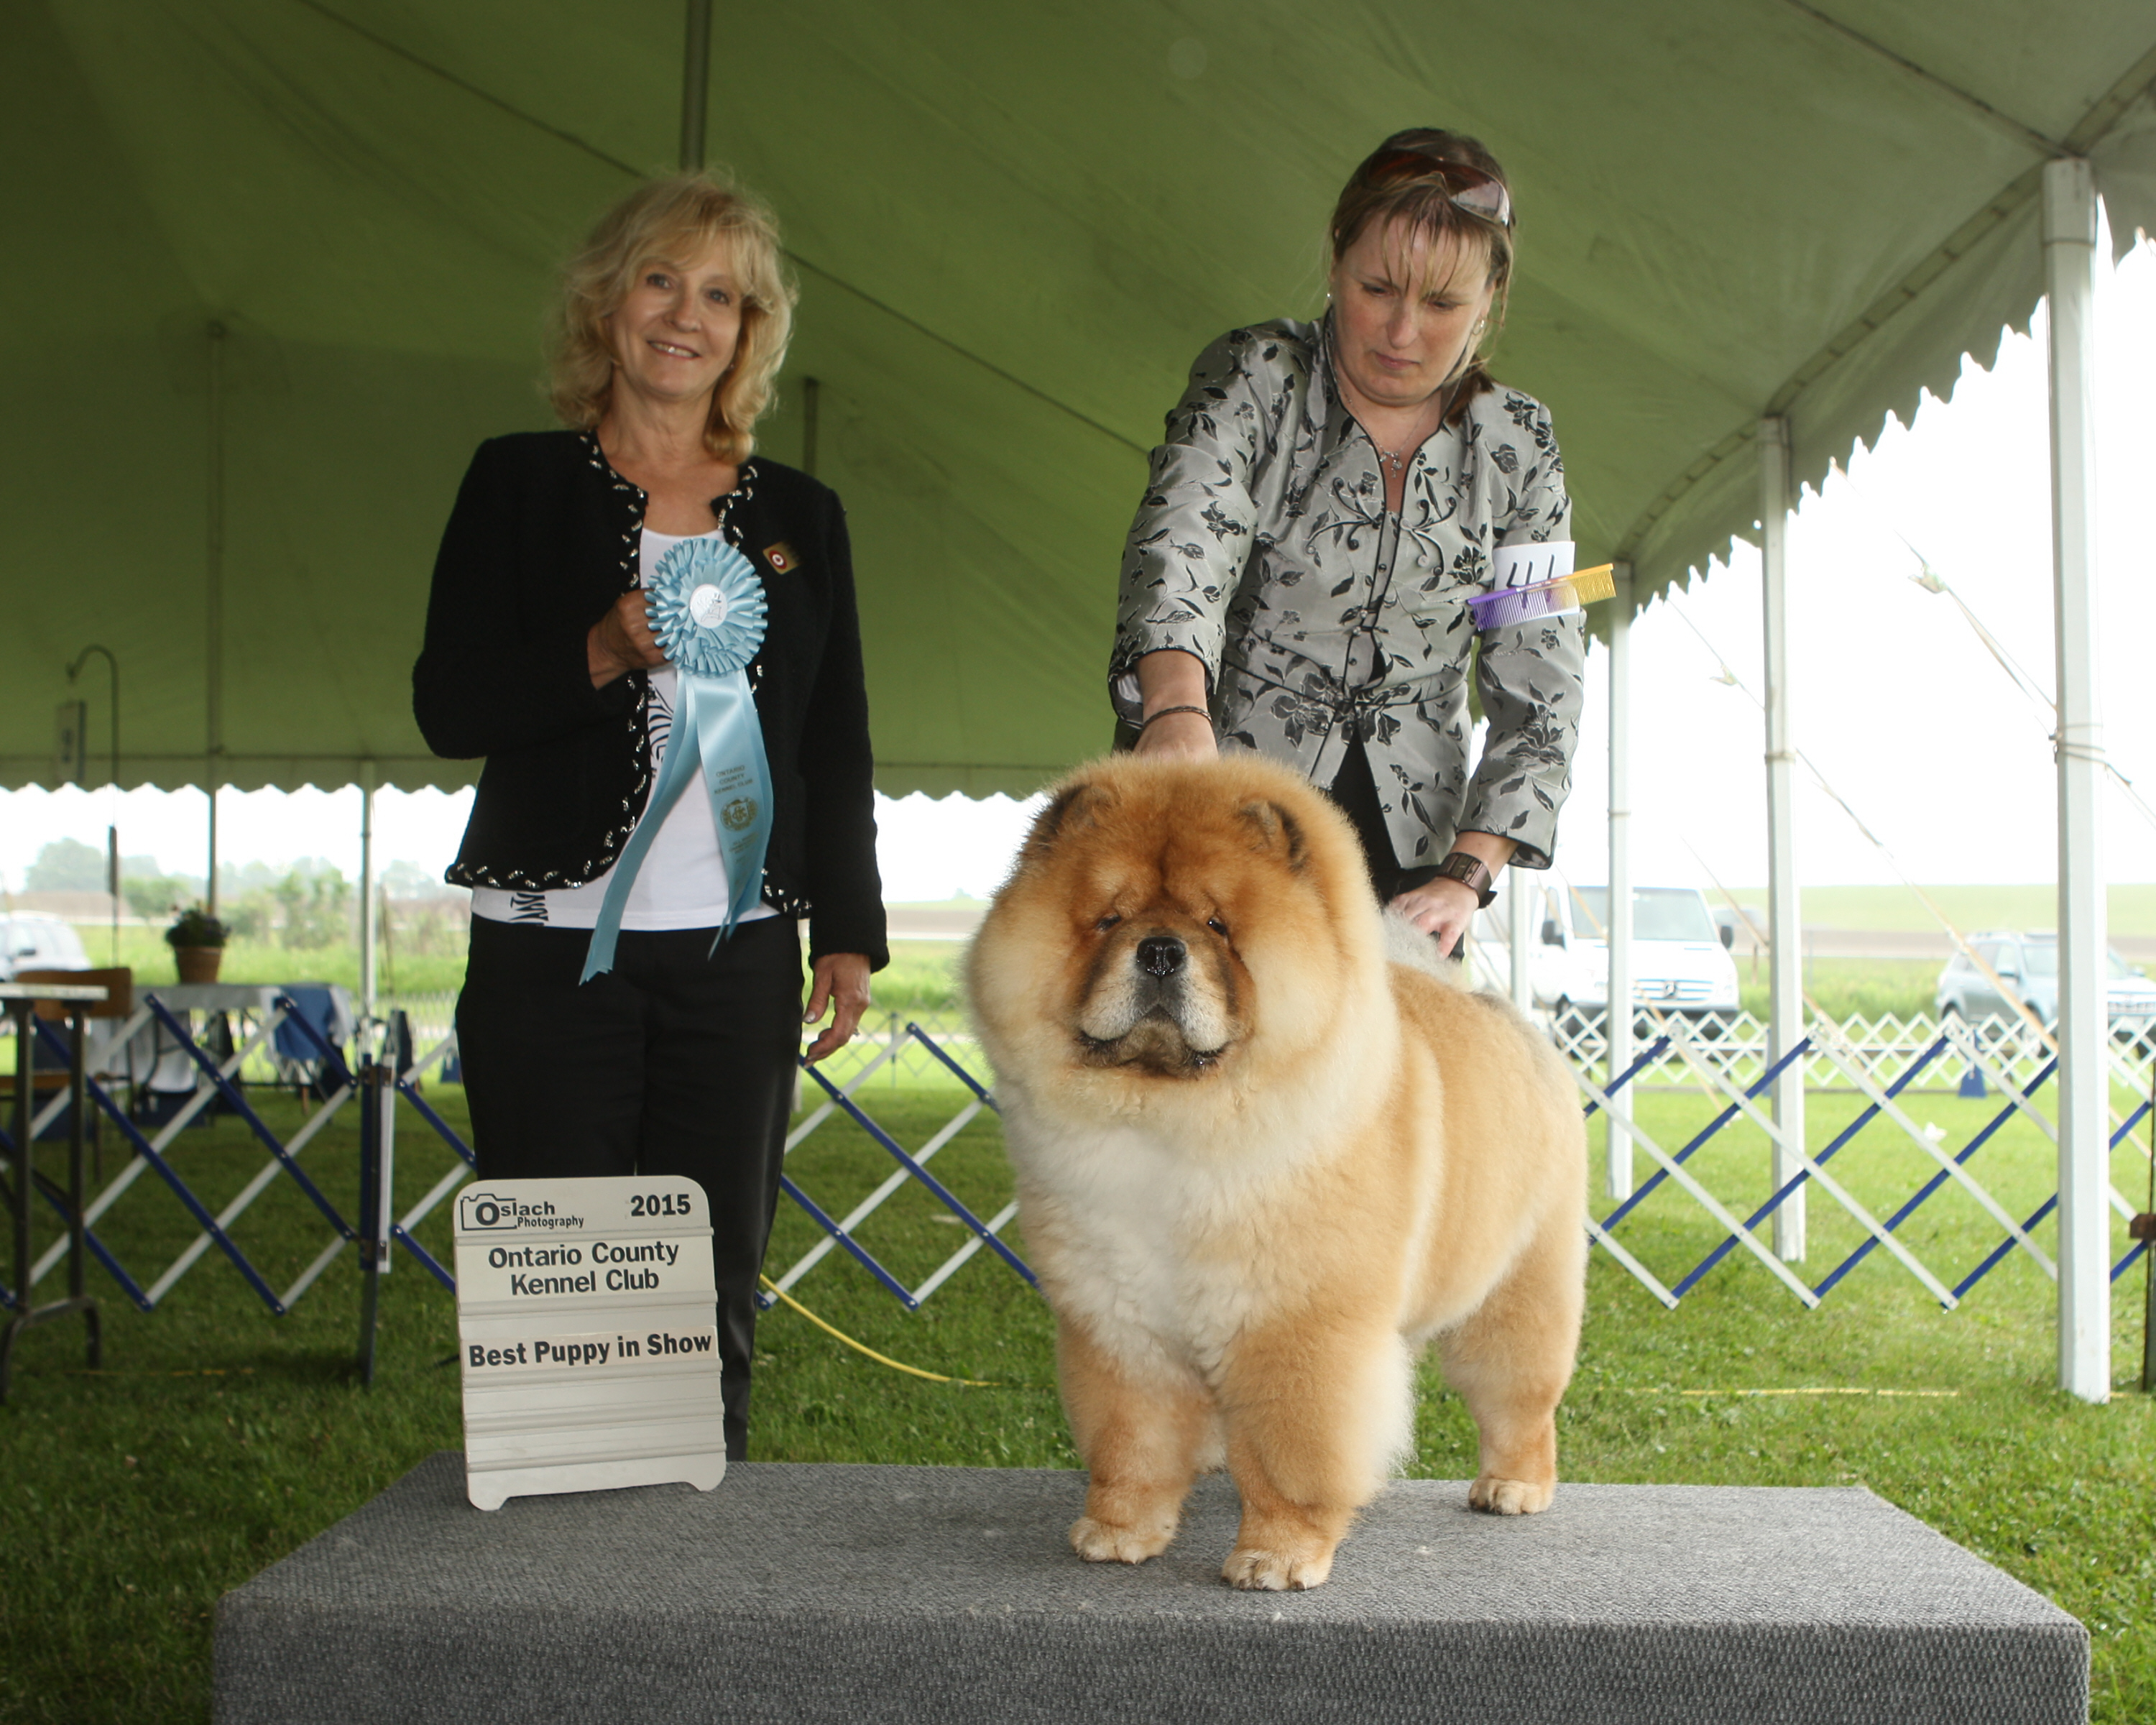 Best Puppy in Show Day 1 - Chow Chow